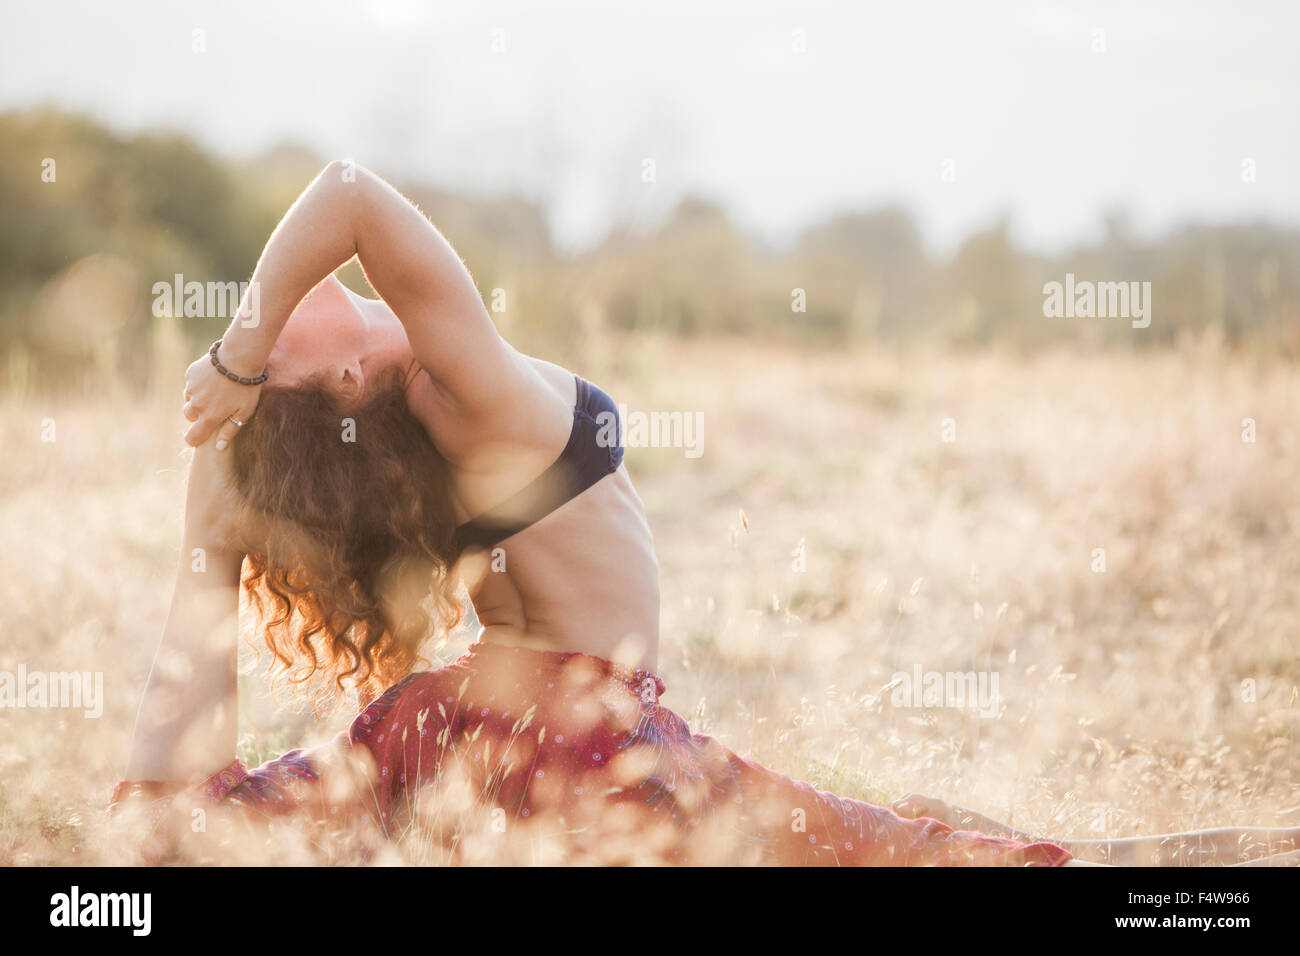 Woman in royal king pigeon yoga pose in rural field - Stock Image